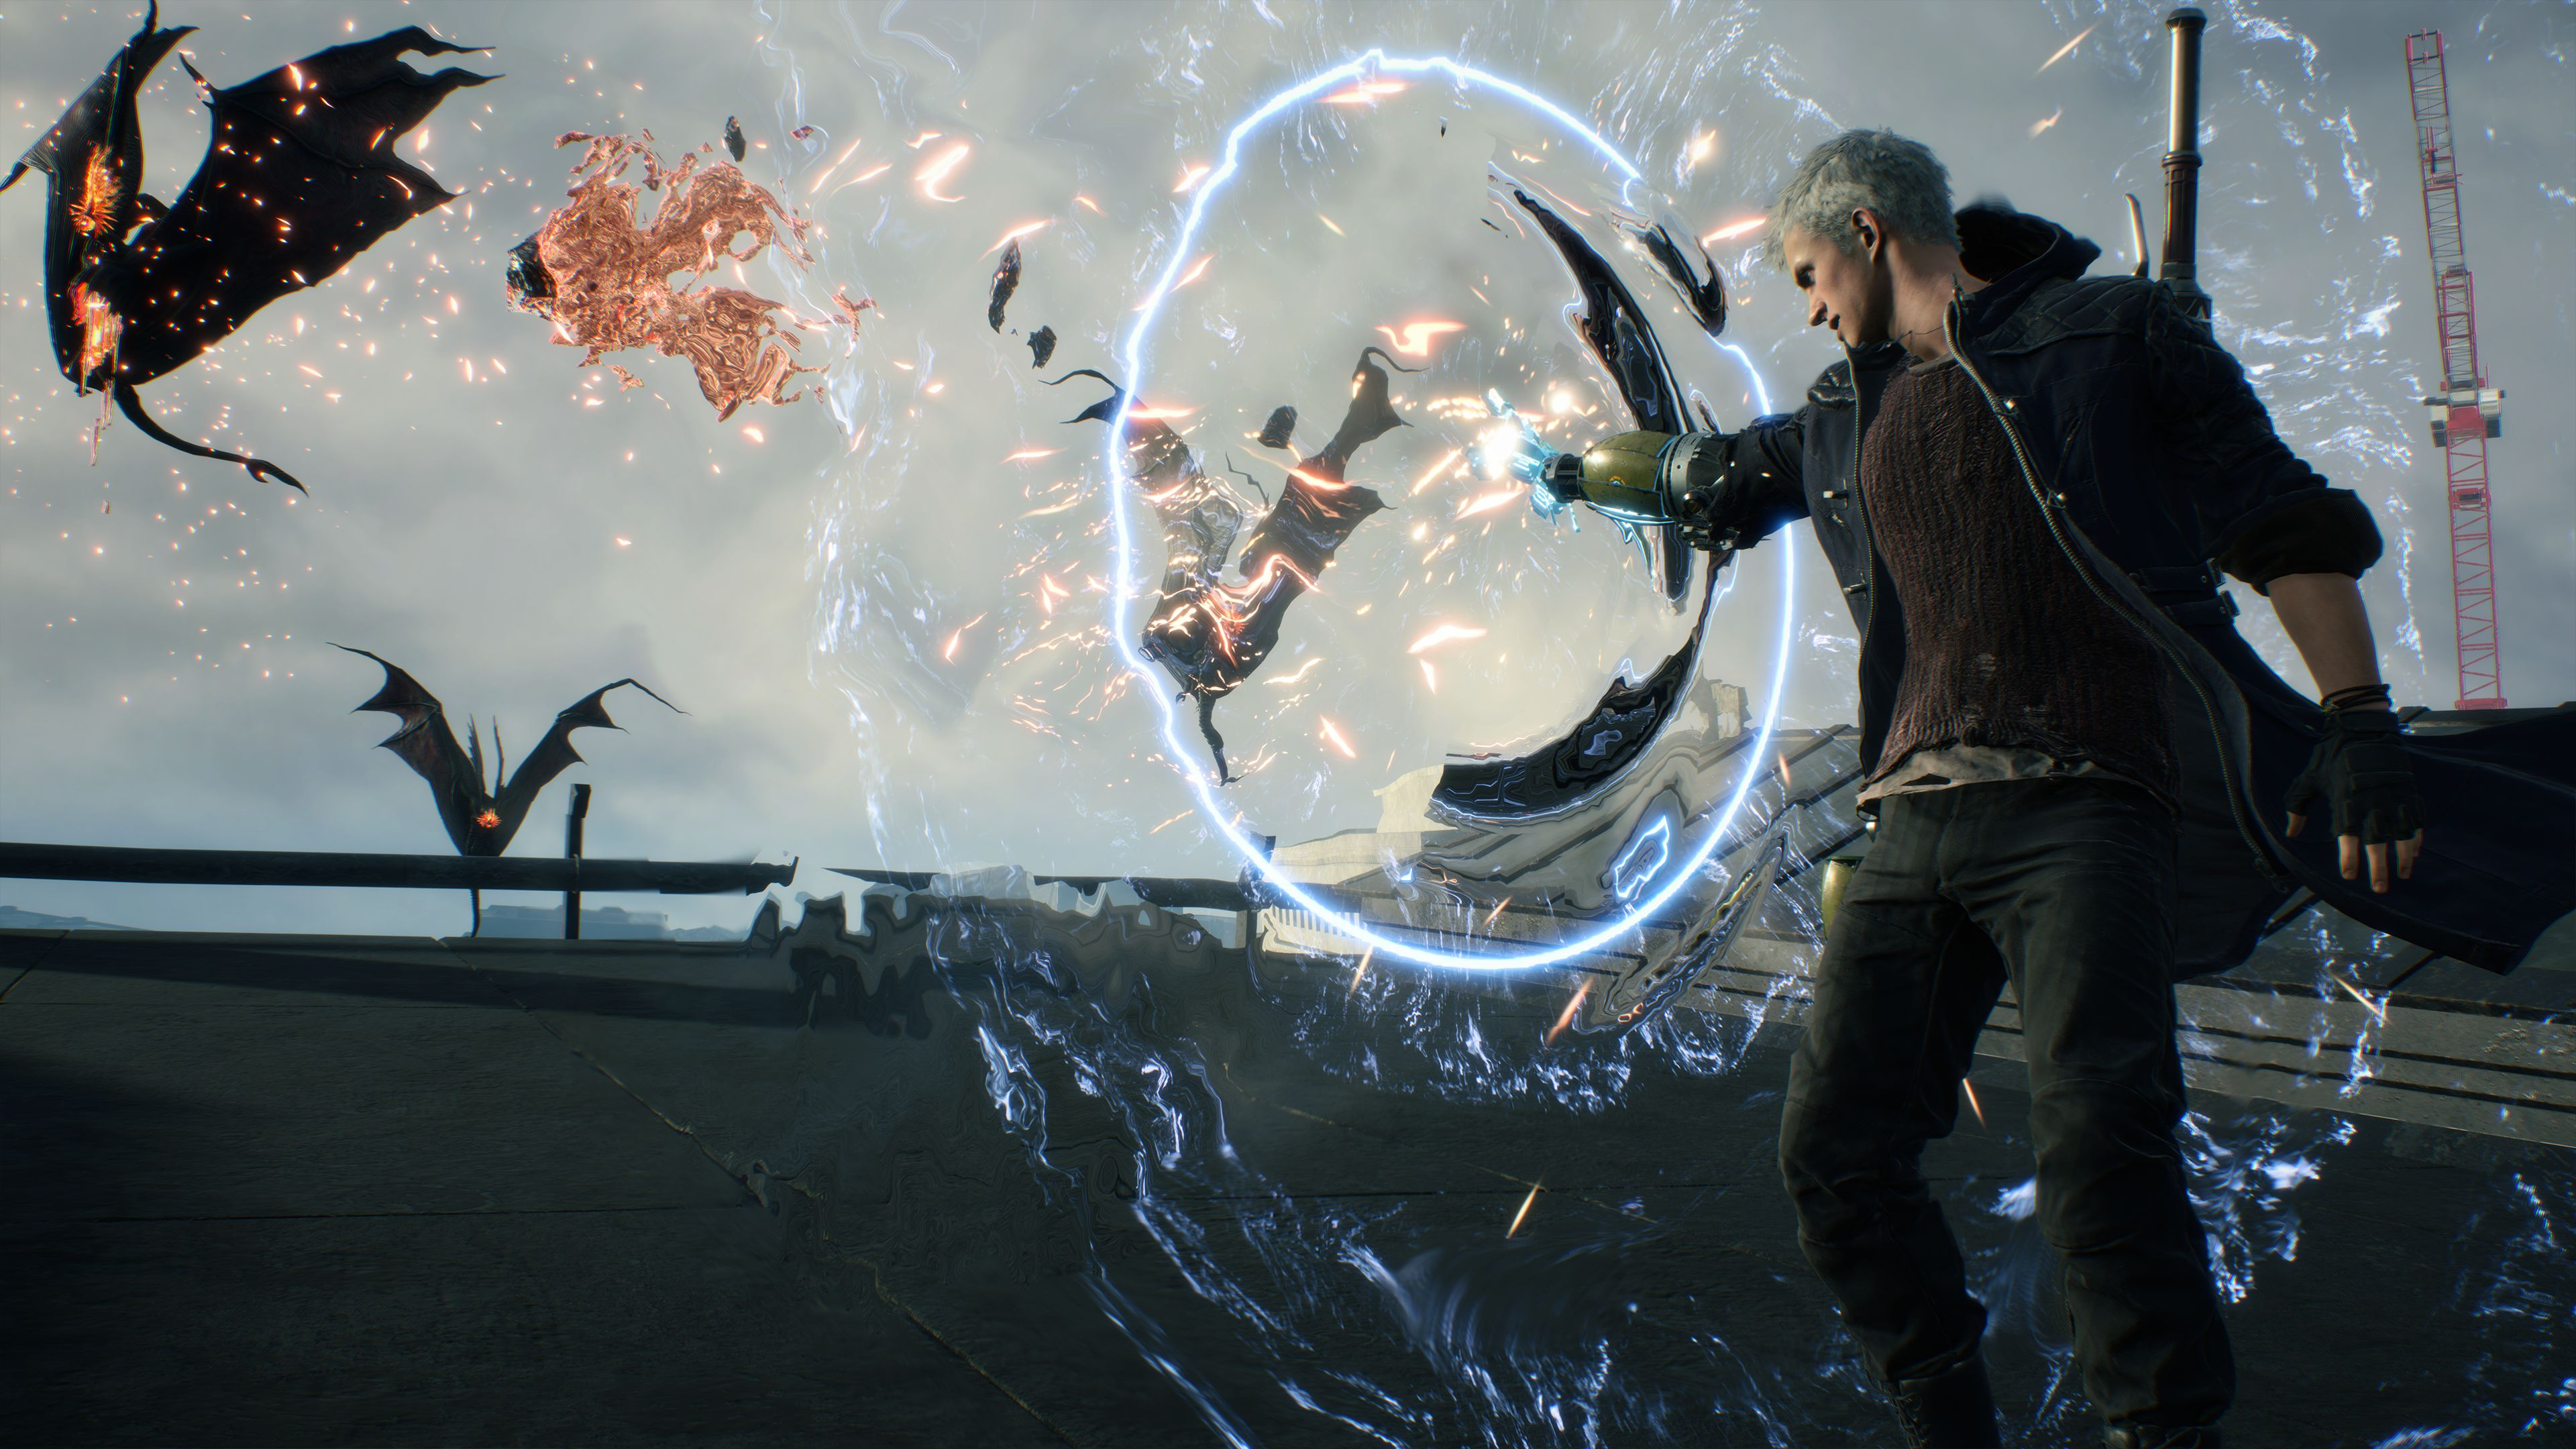 Devil May Cry Gameplay Hd Games 4k Wallpapers Images